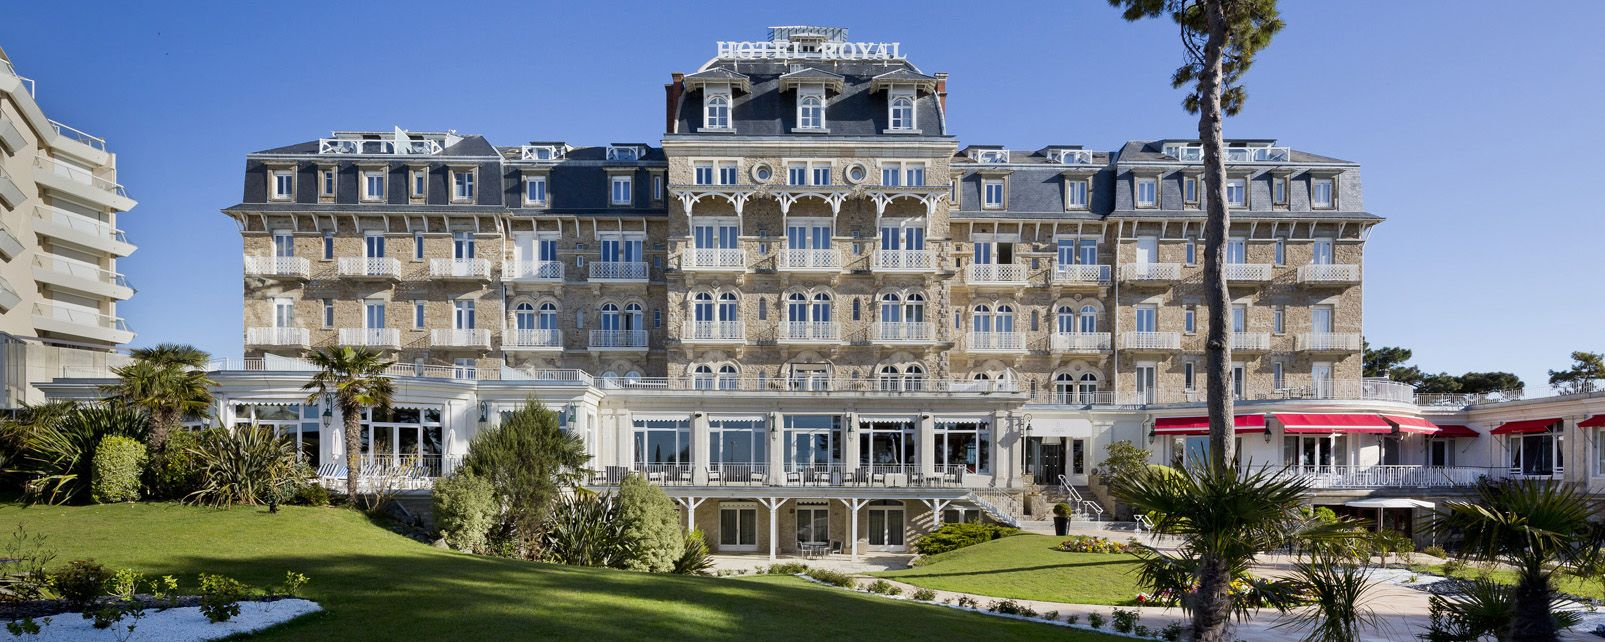 H tel le royal la baule for Hotels la baule